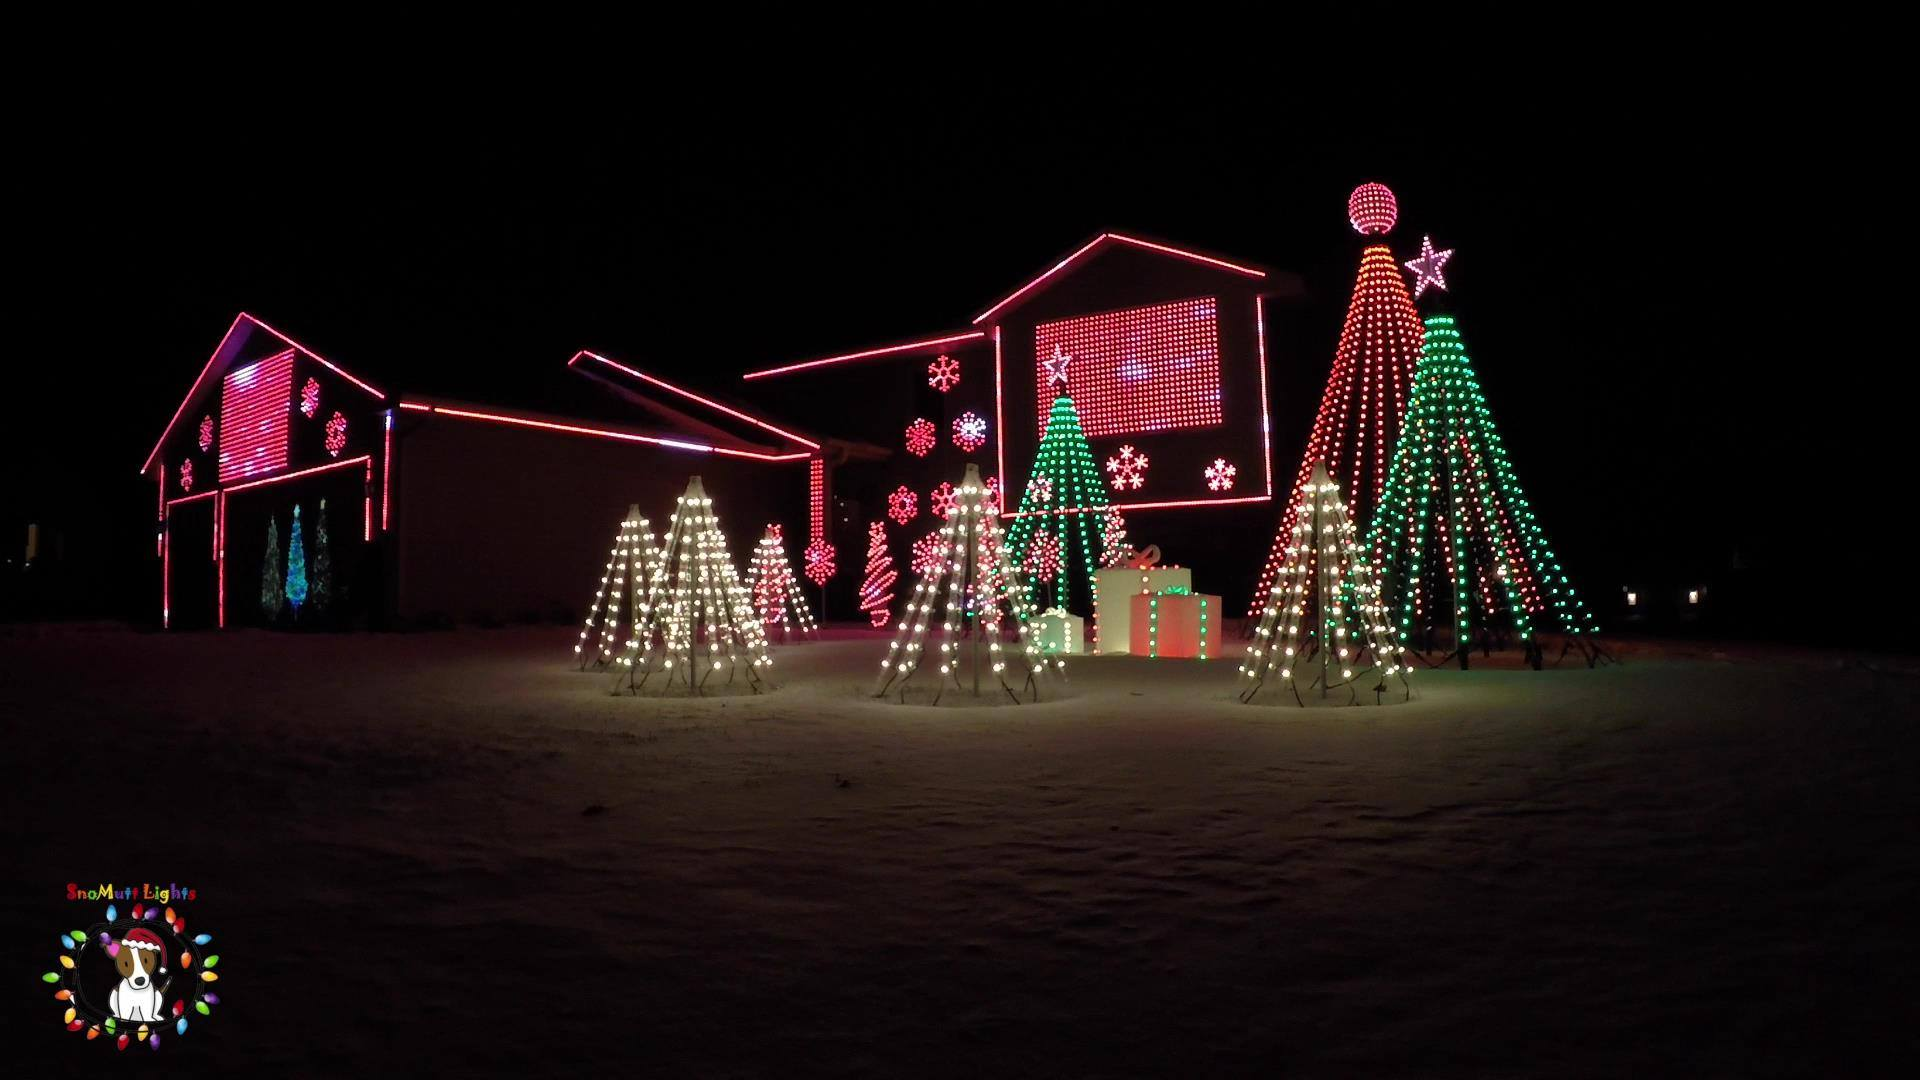 Best Christmas Lights Duluth Mn 2020 Minnesota holiday lights Archives » Give Me The Mike